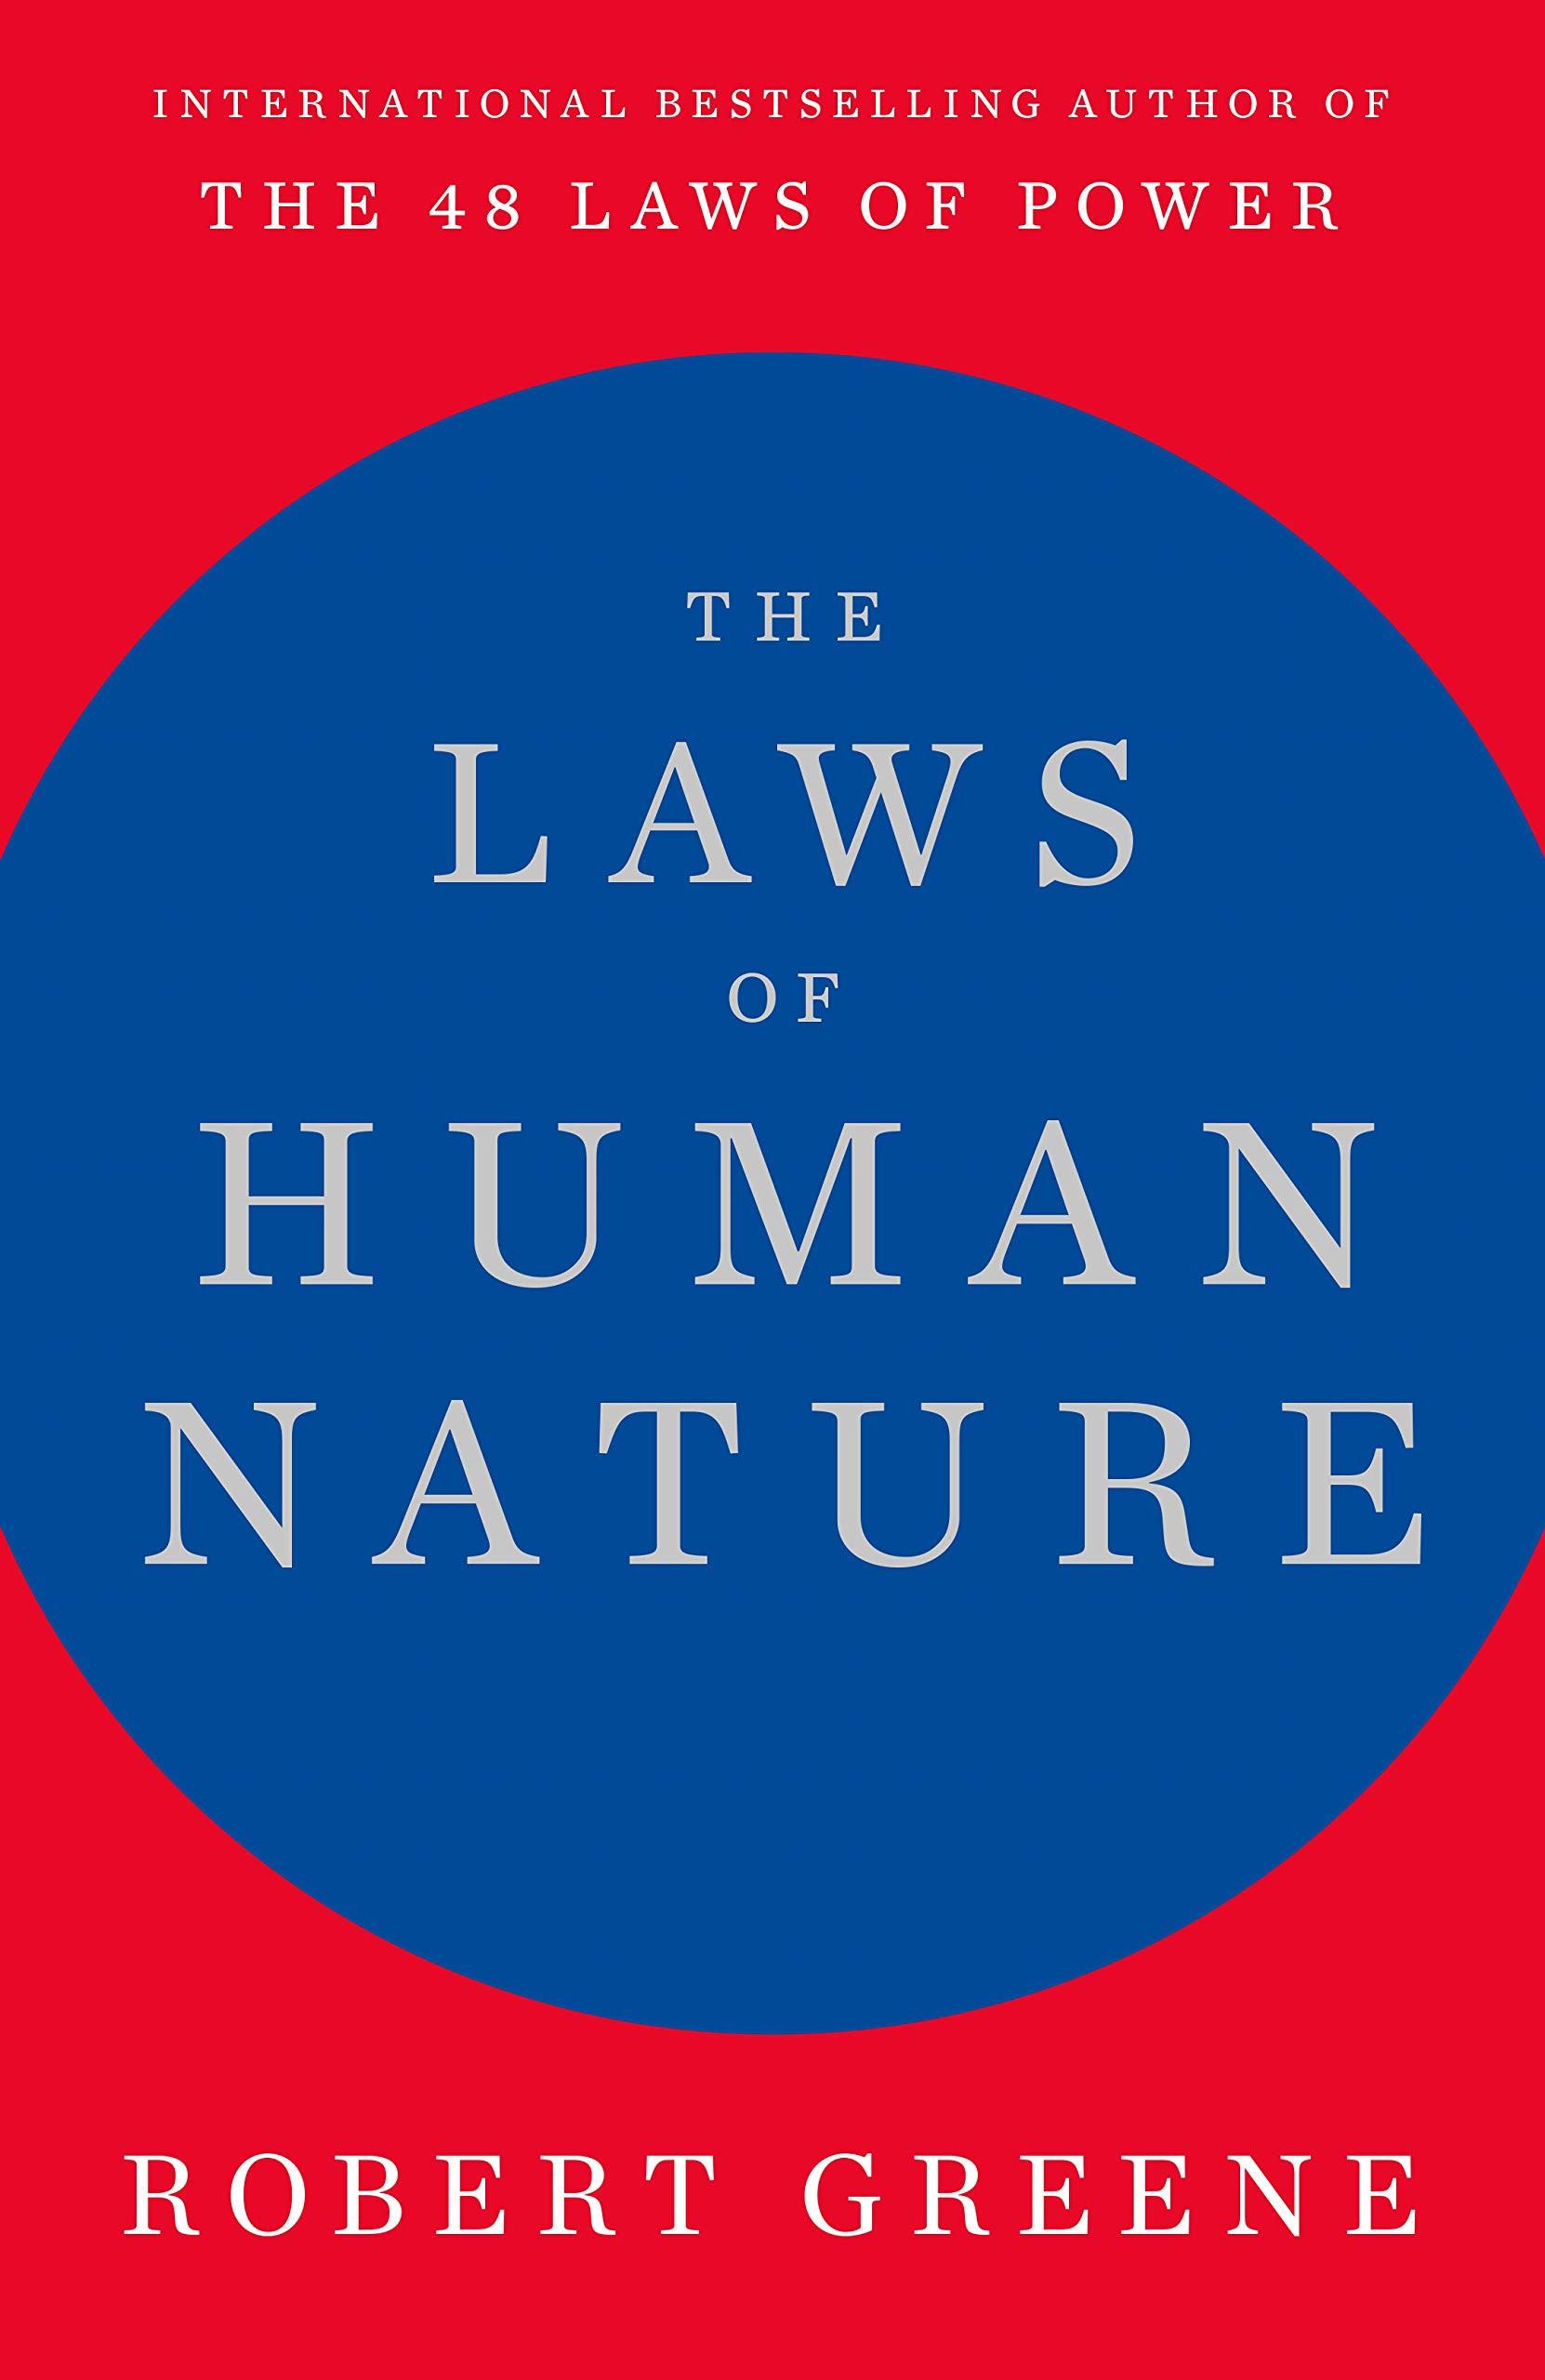 The laws of human nature - hardcover